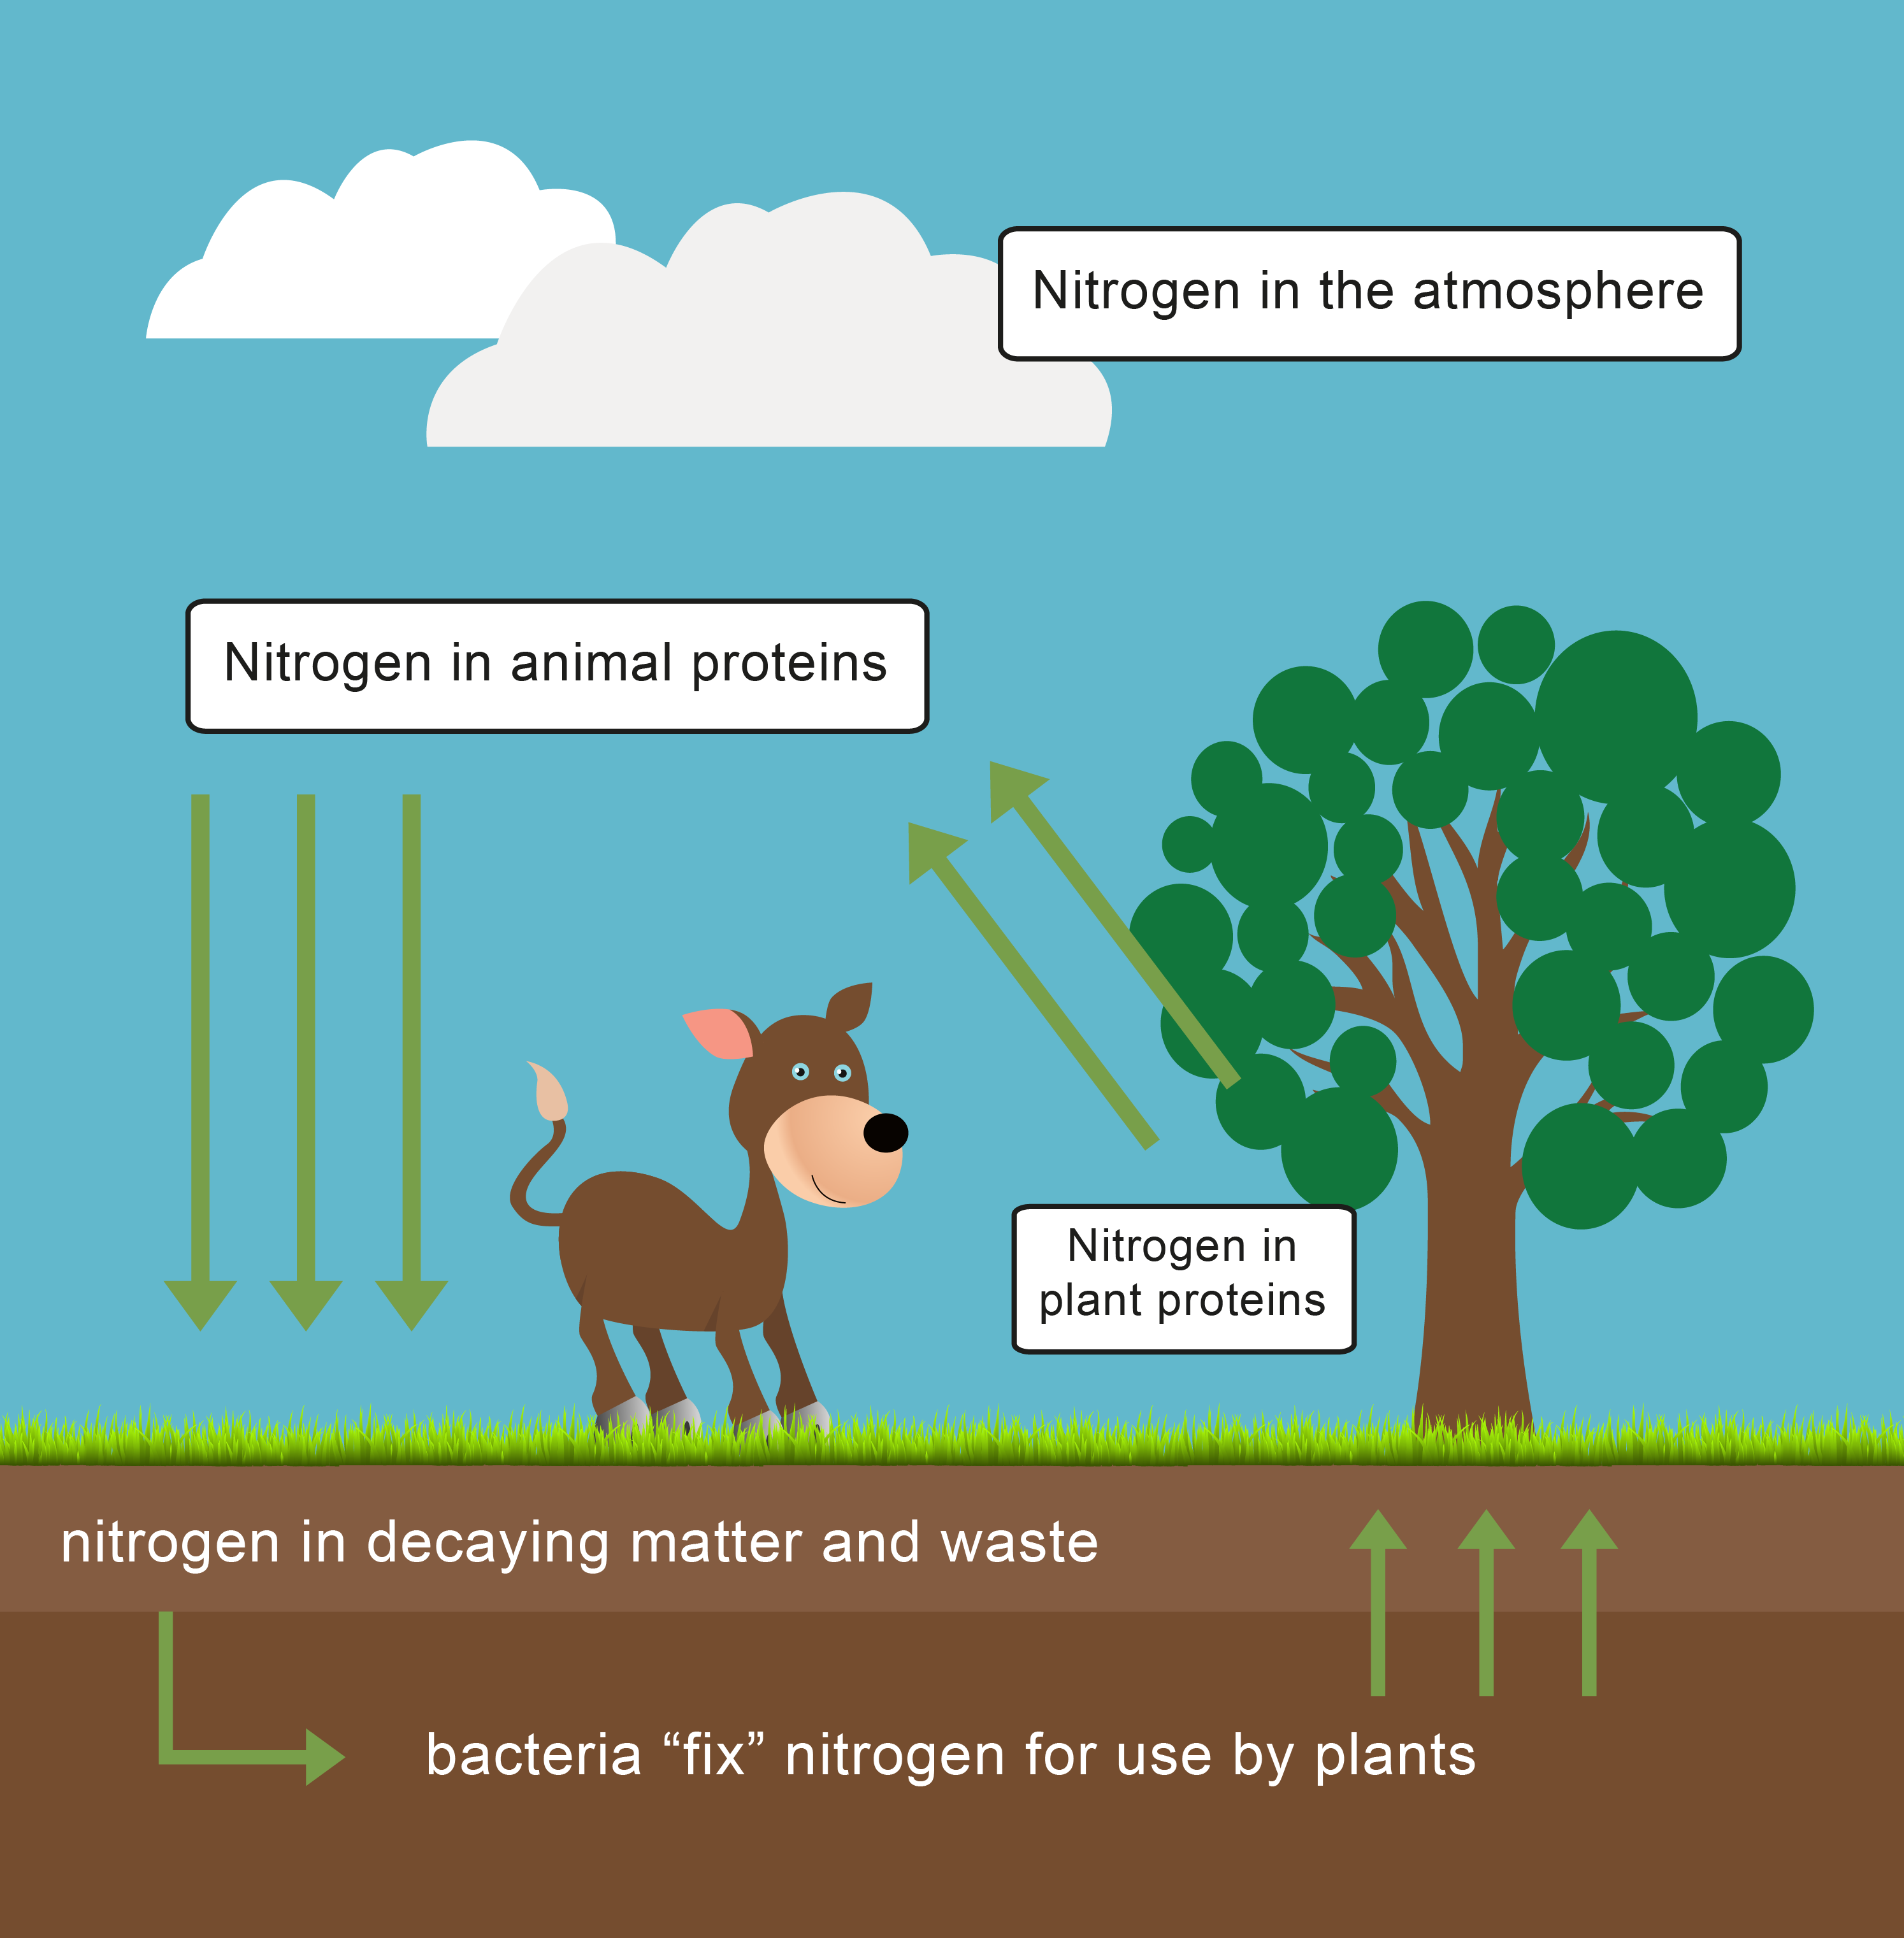 Image source plantsam com - Look At The Picture And Choose The Main Source Of Nitrogen For Plants